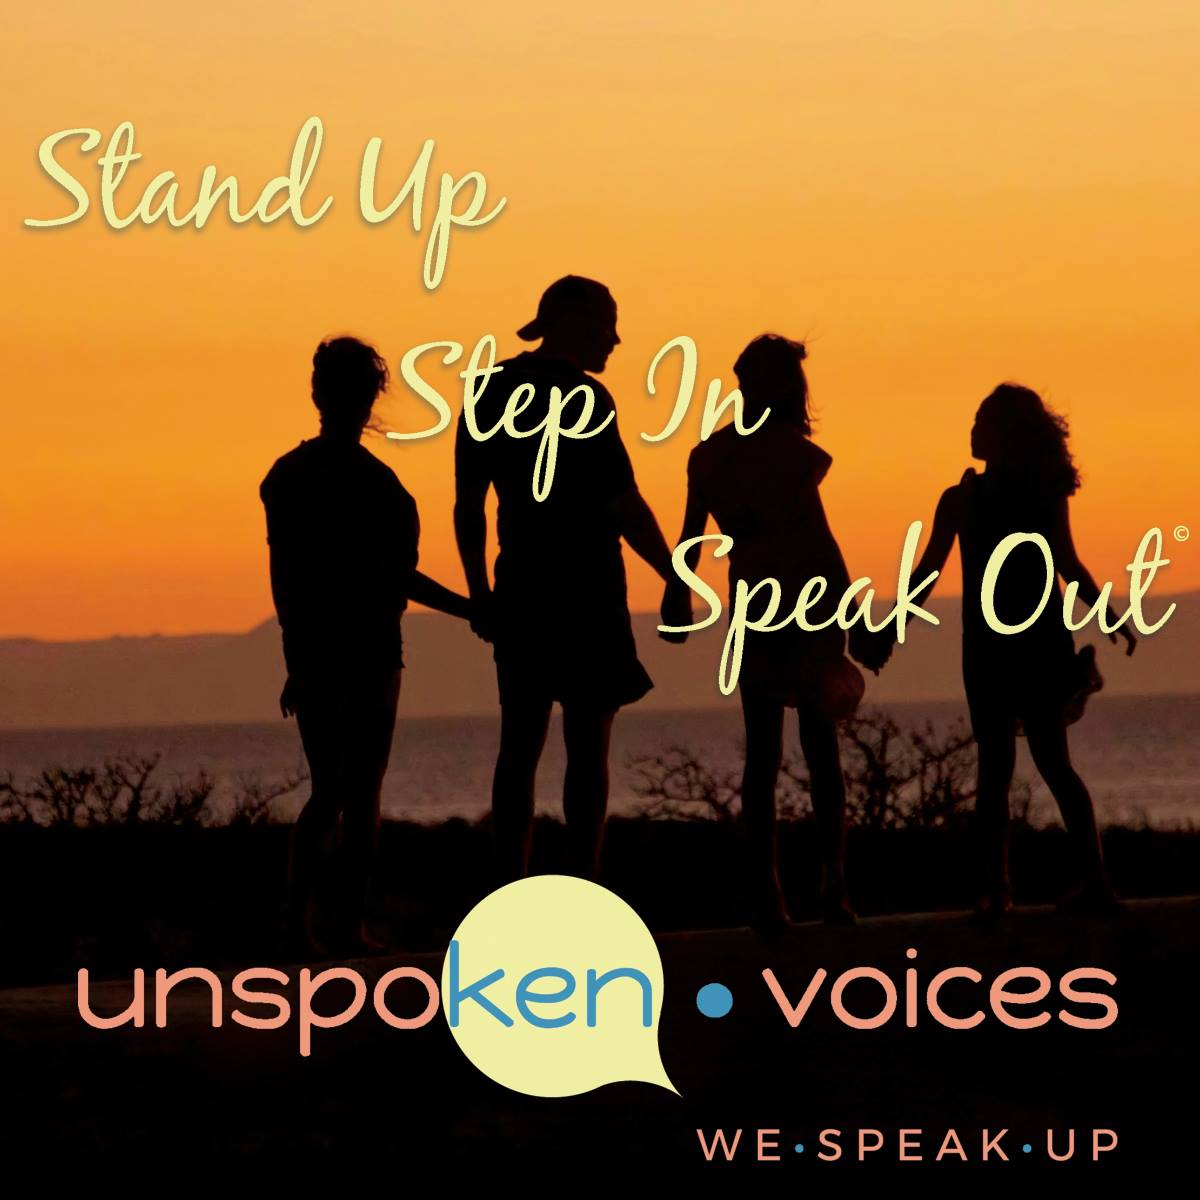 Stand up. Step in. Speak out. Graphic copyright Unspoken Voices 2018.